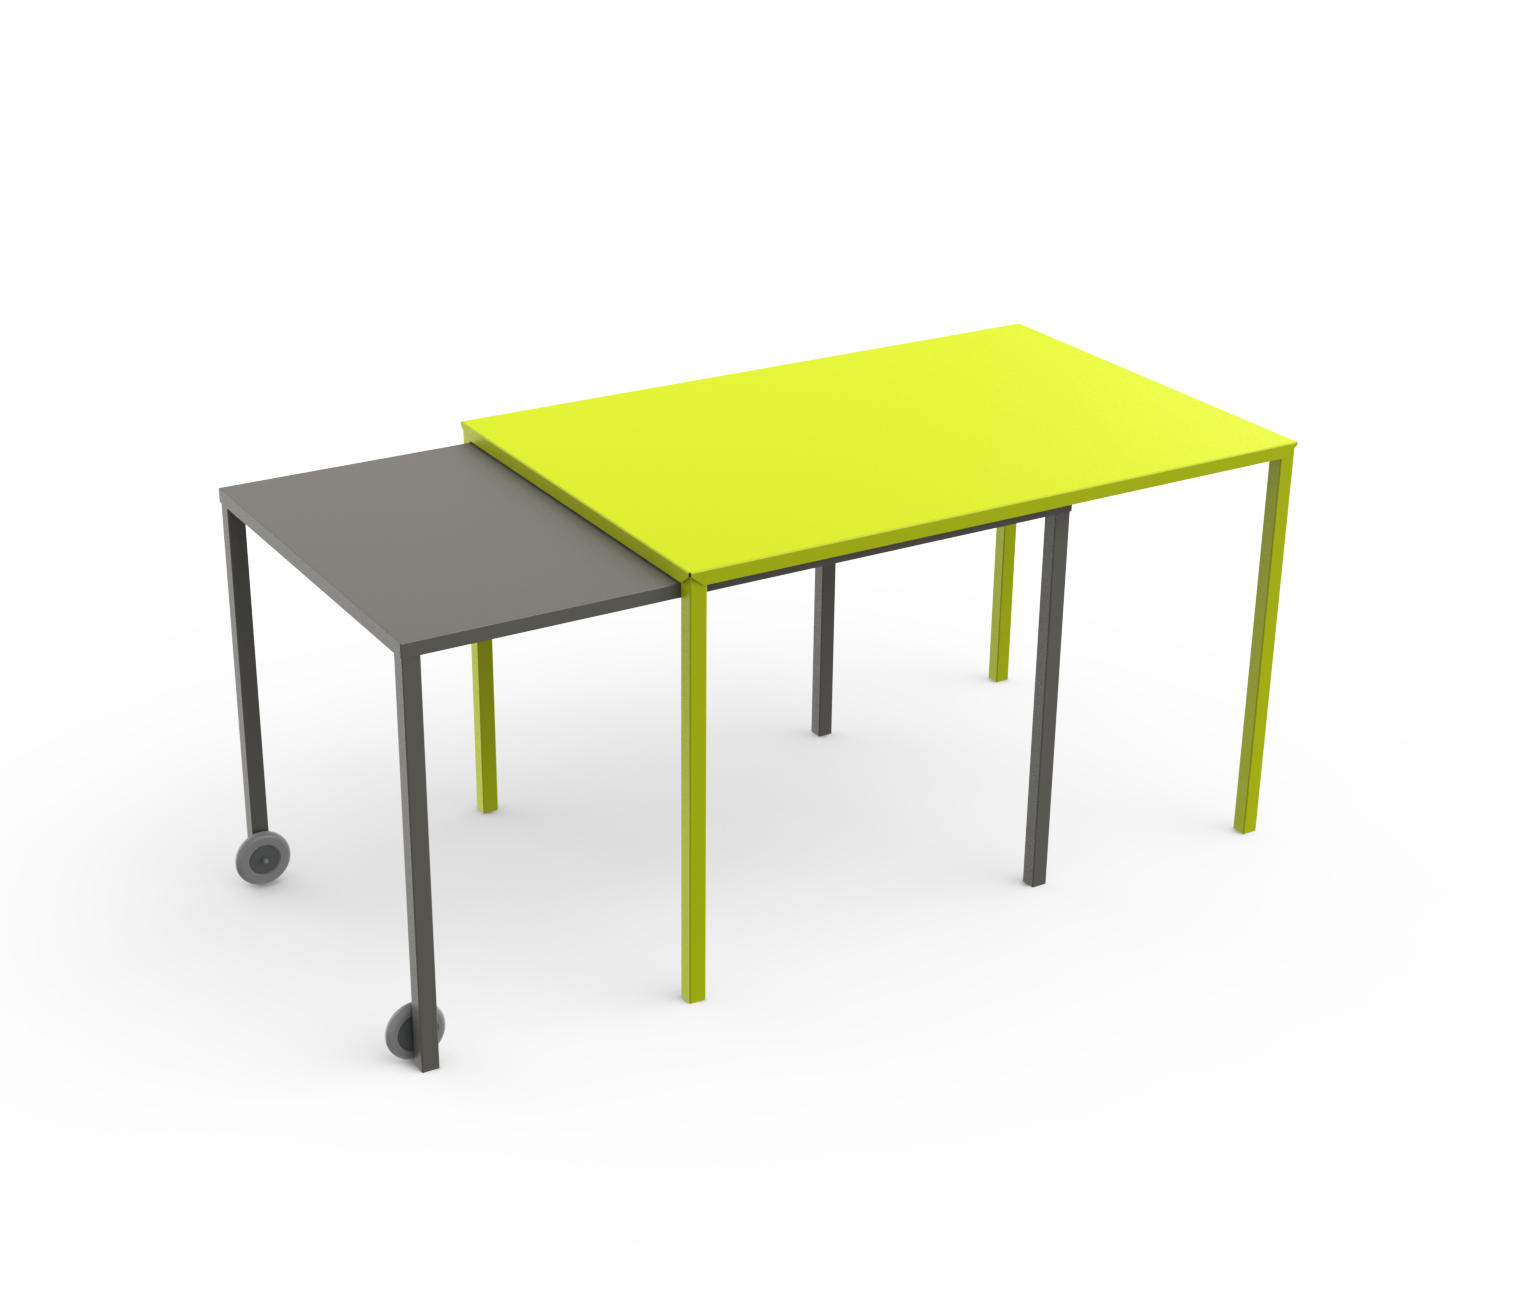 rafale s table - dining tables from matière grise   architonic